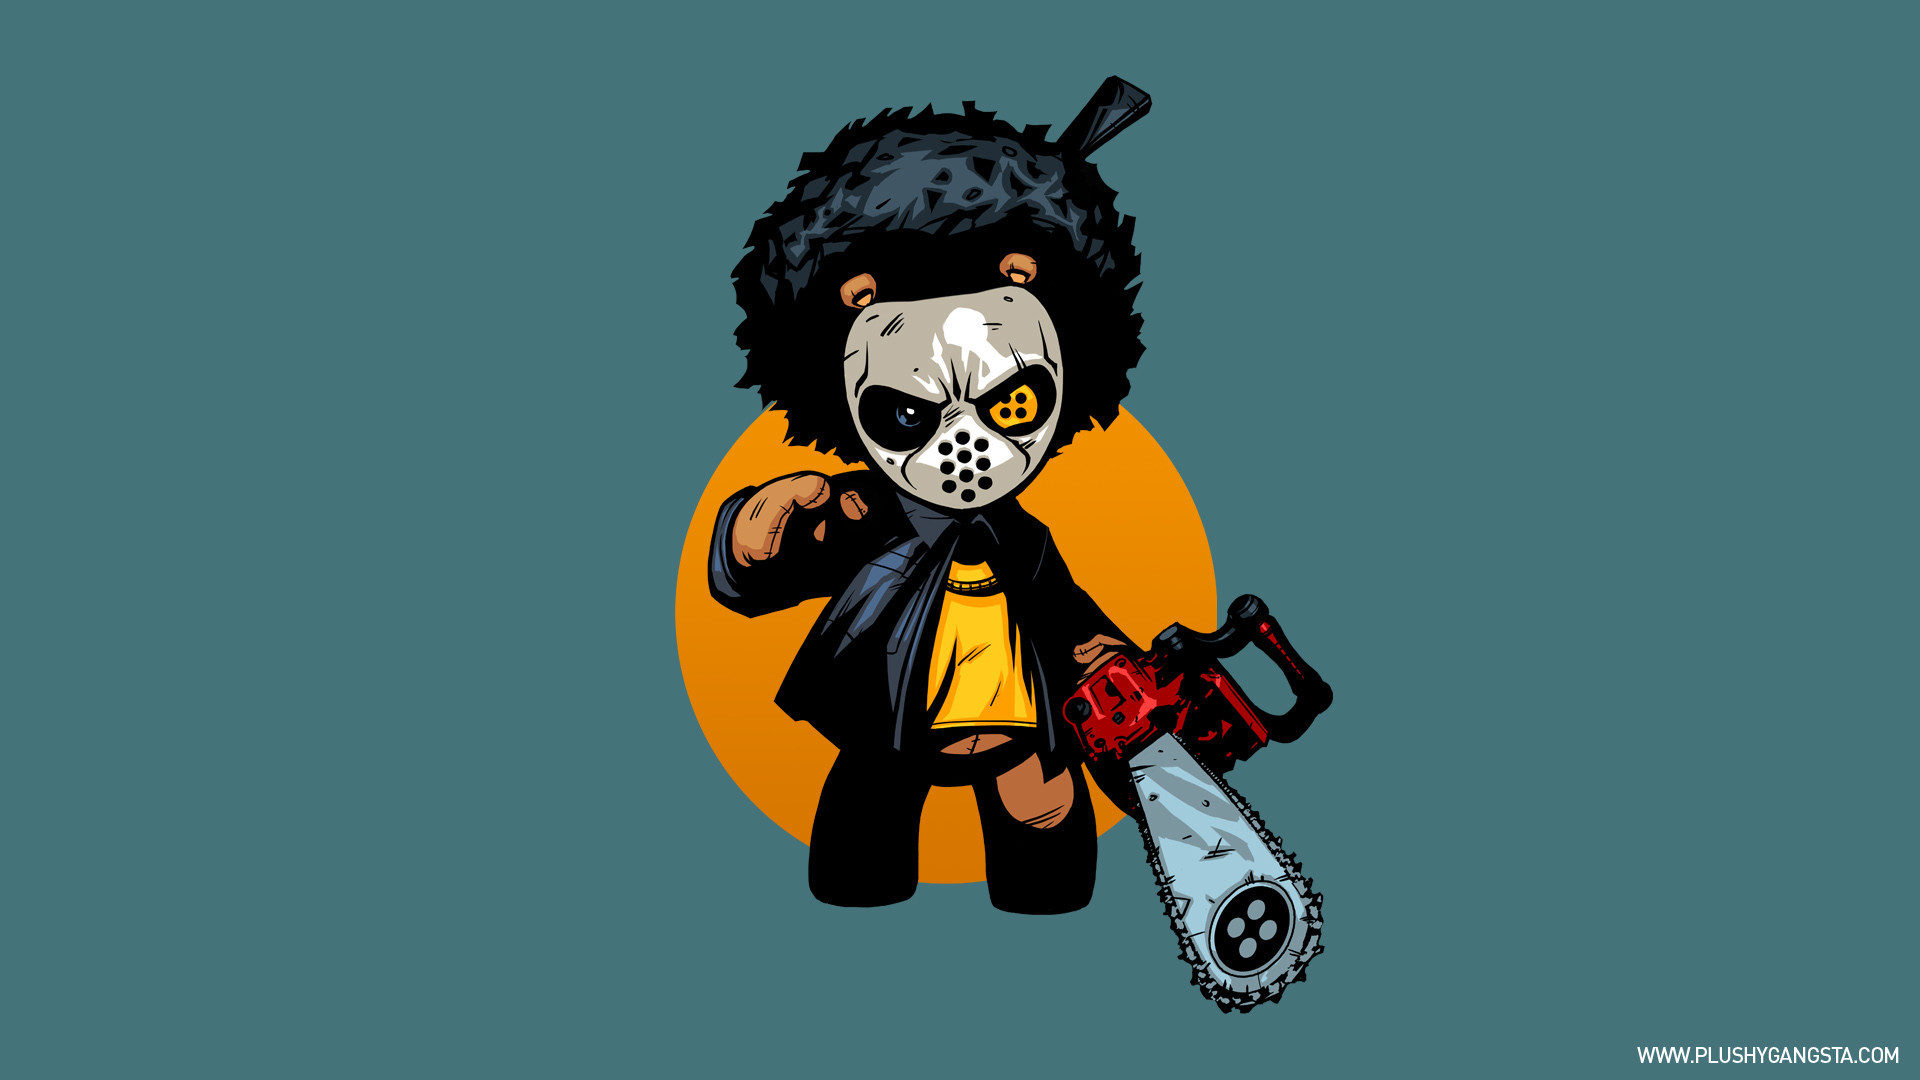 Cool cartoon gangster wallpapers wallpapertag - Hood cartoon wallpaper ...